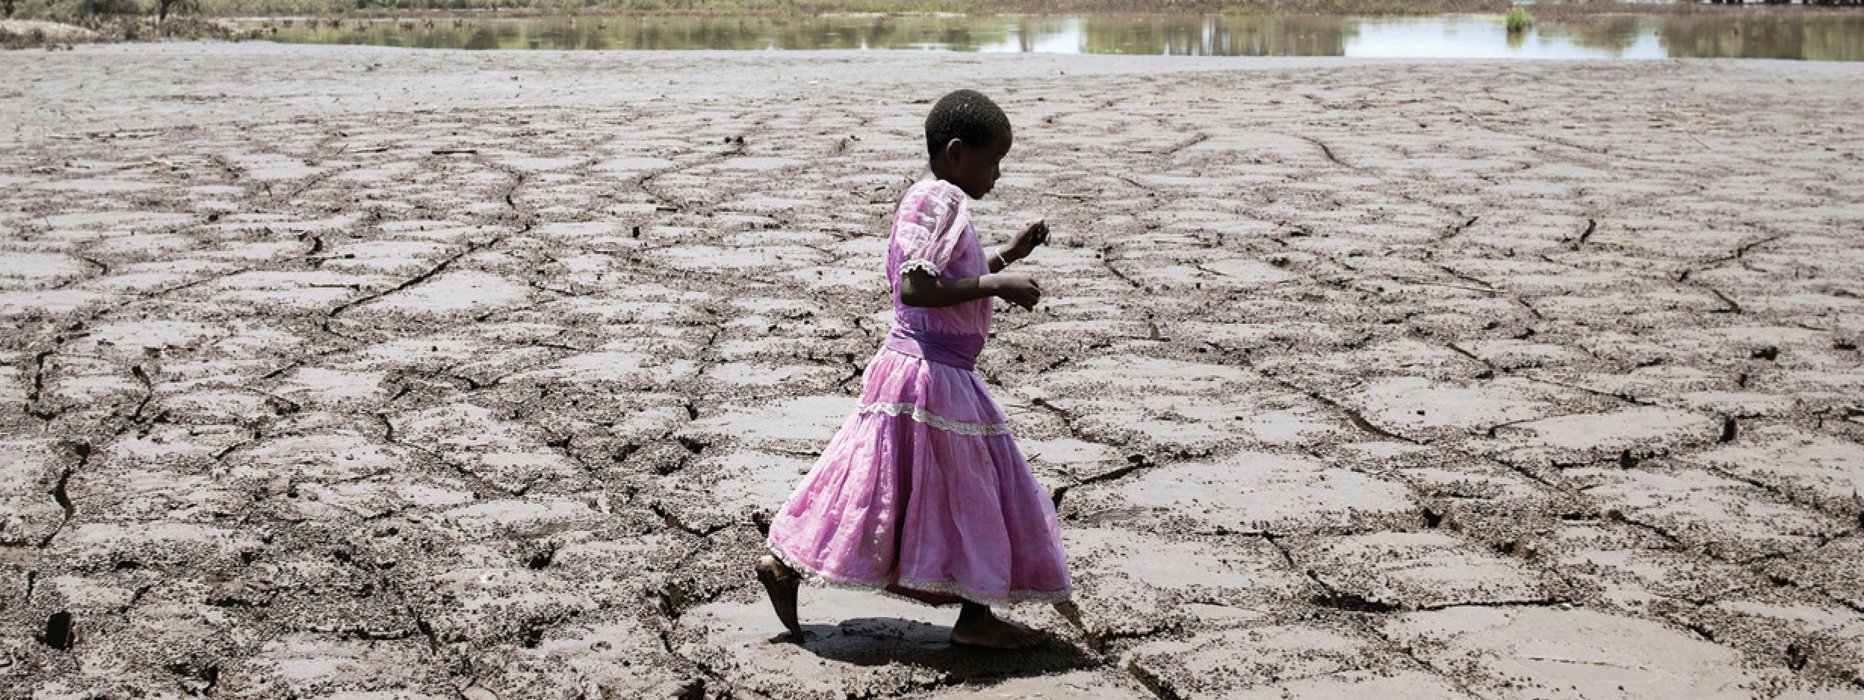 AGRICULTURE AND FOOD INSECURITY RISK MANAGEMENT IN AFRICA